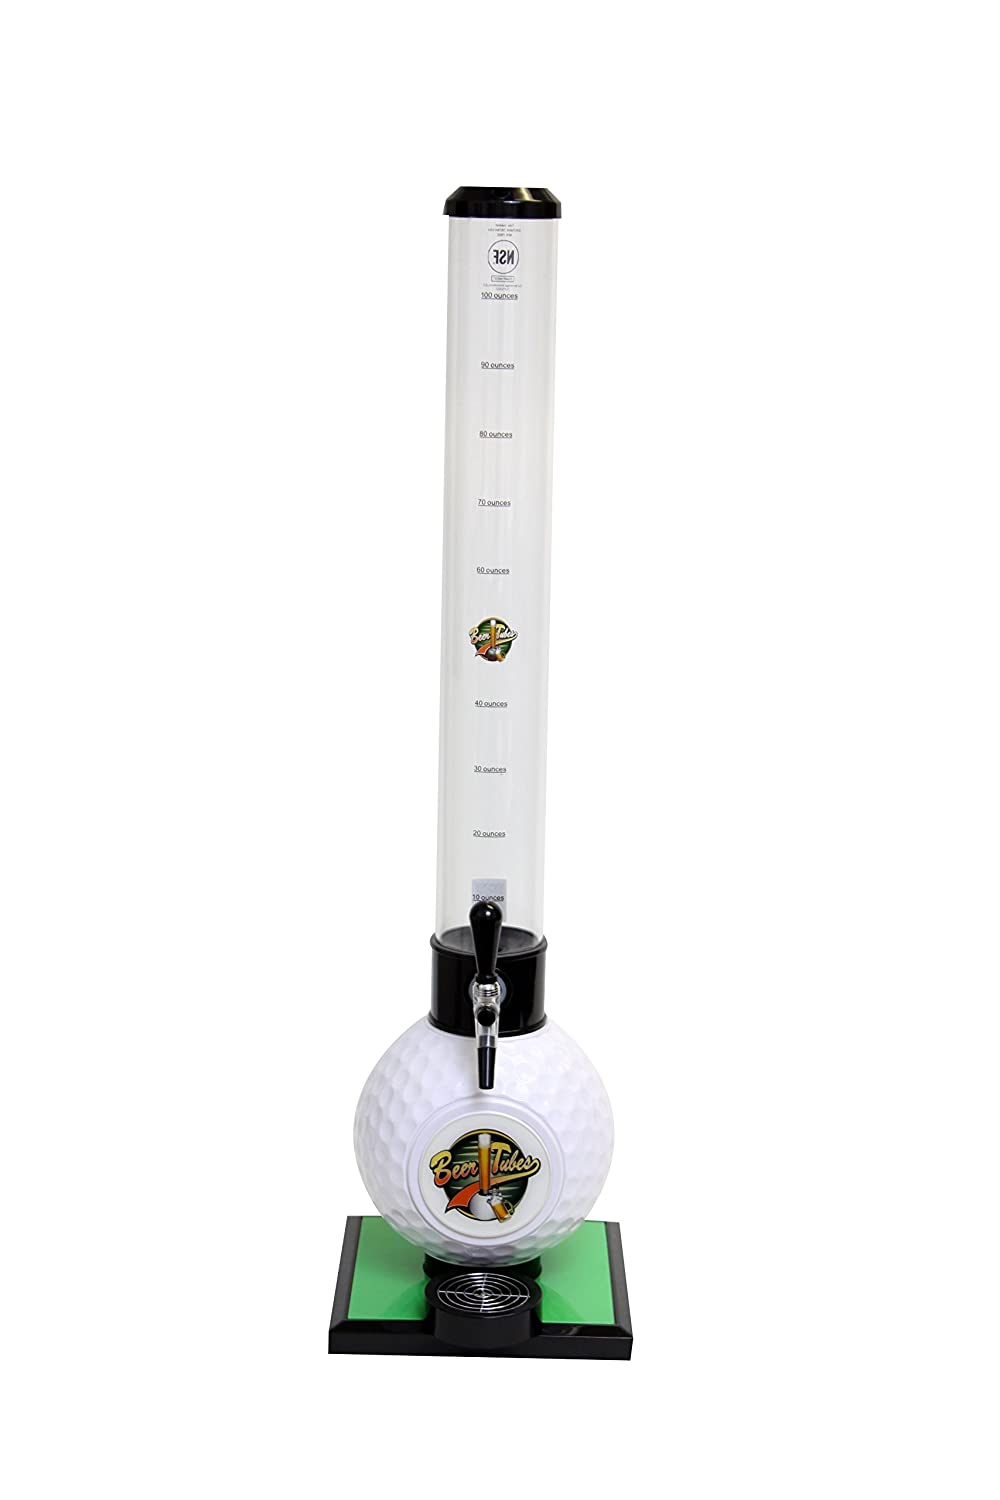 Beer Tubes Golf Ball Base Beverage Tower Dispenser with Commercial Tap, 100 oz. Tall Tube, White, GOL-32-C